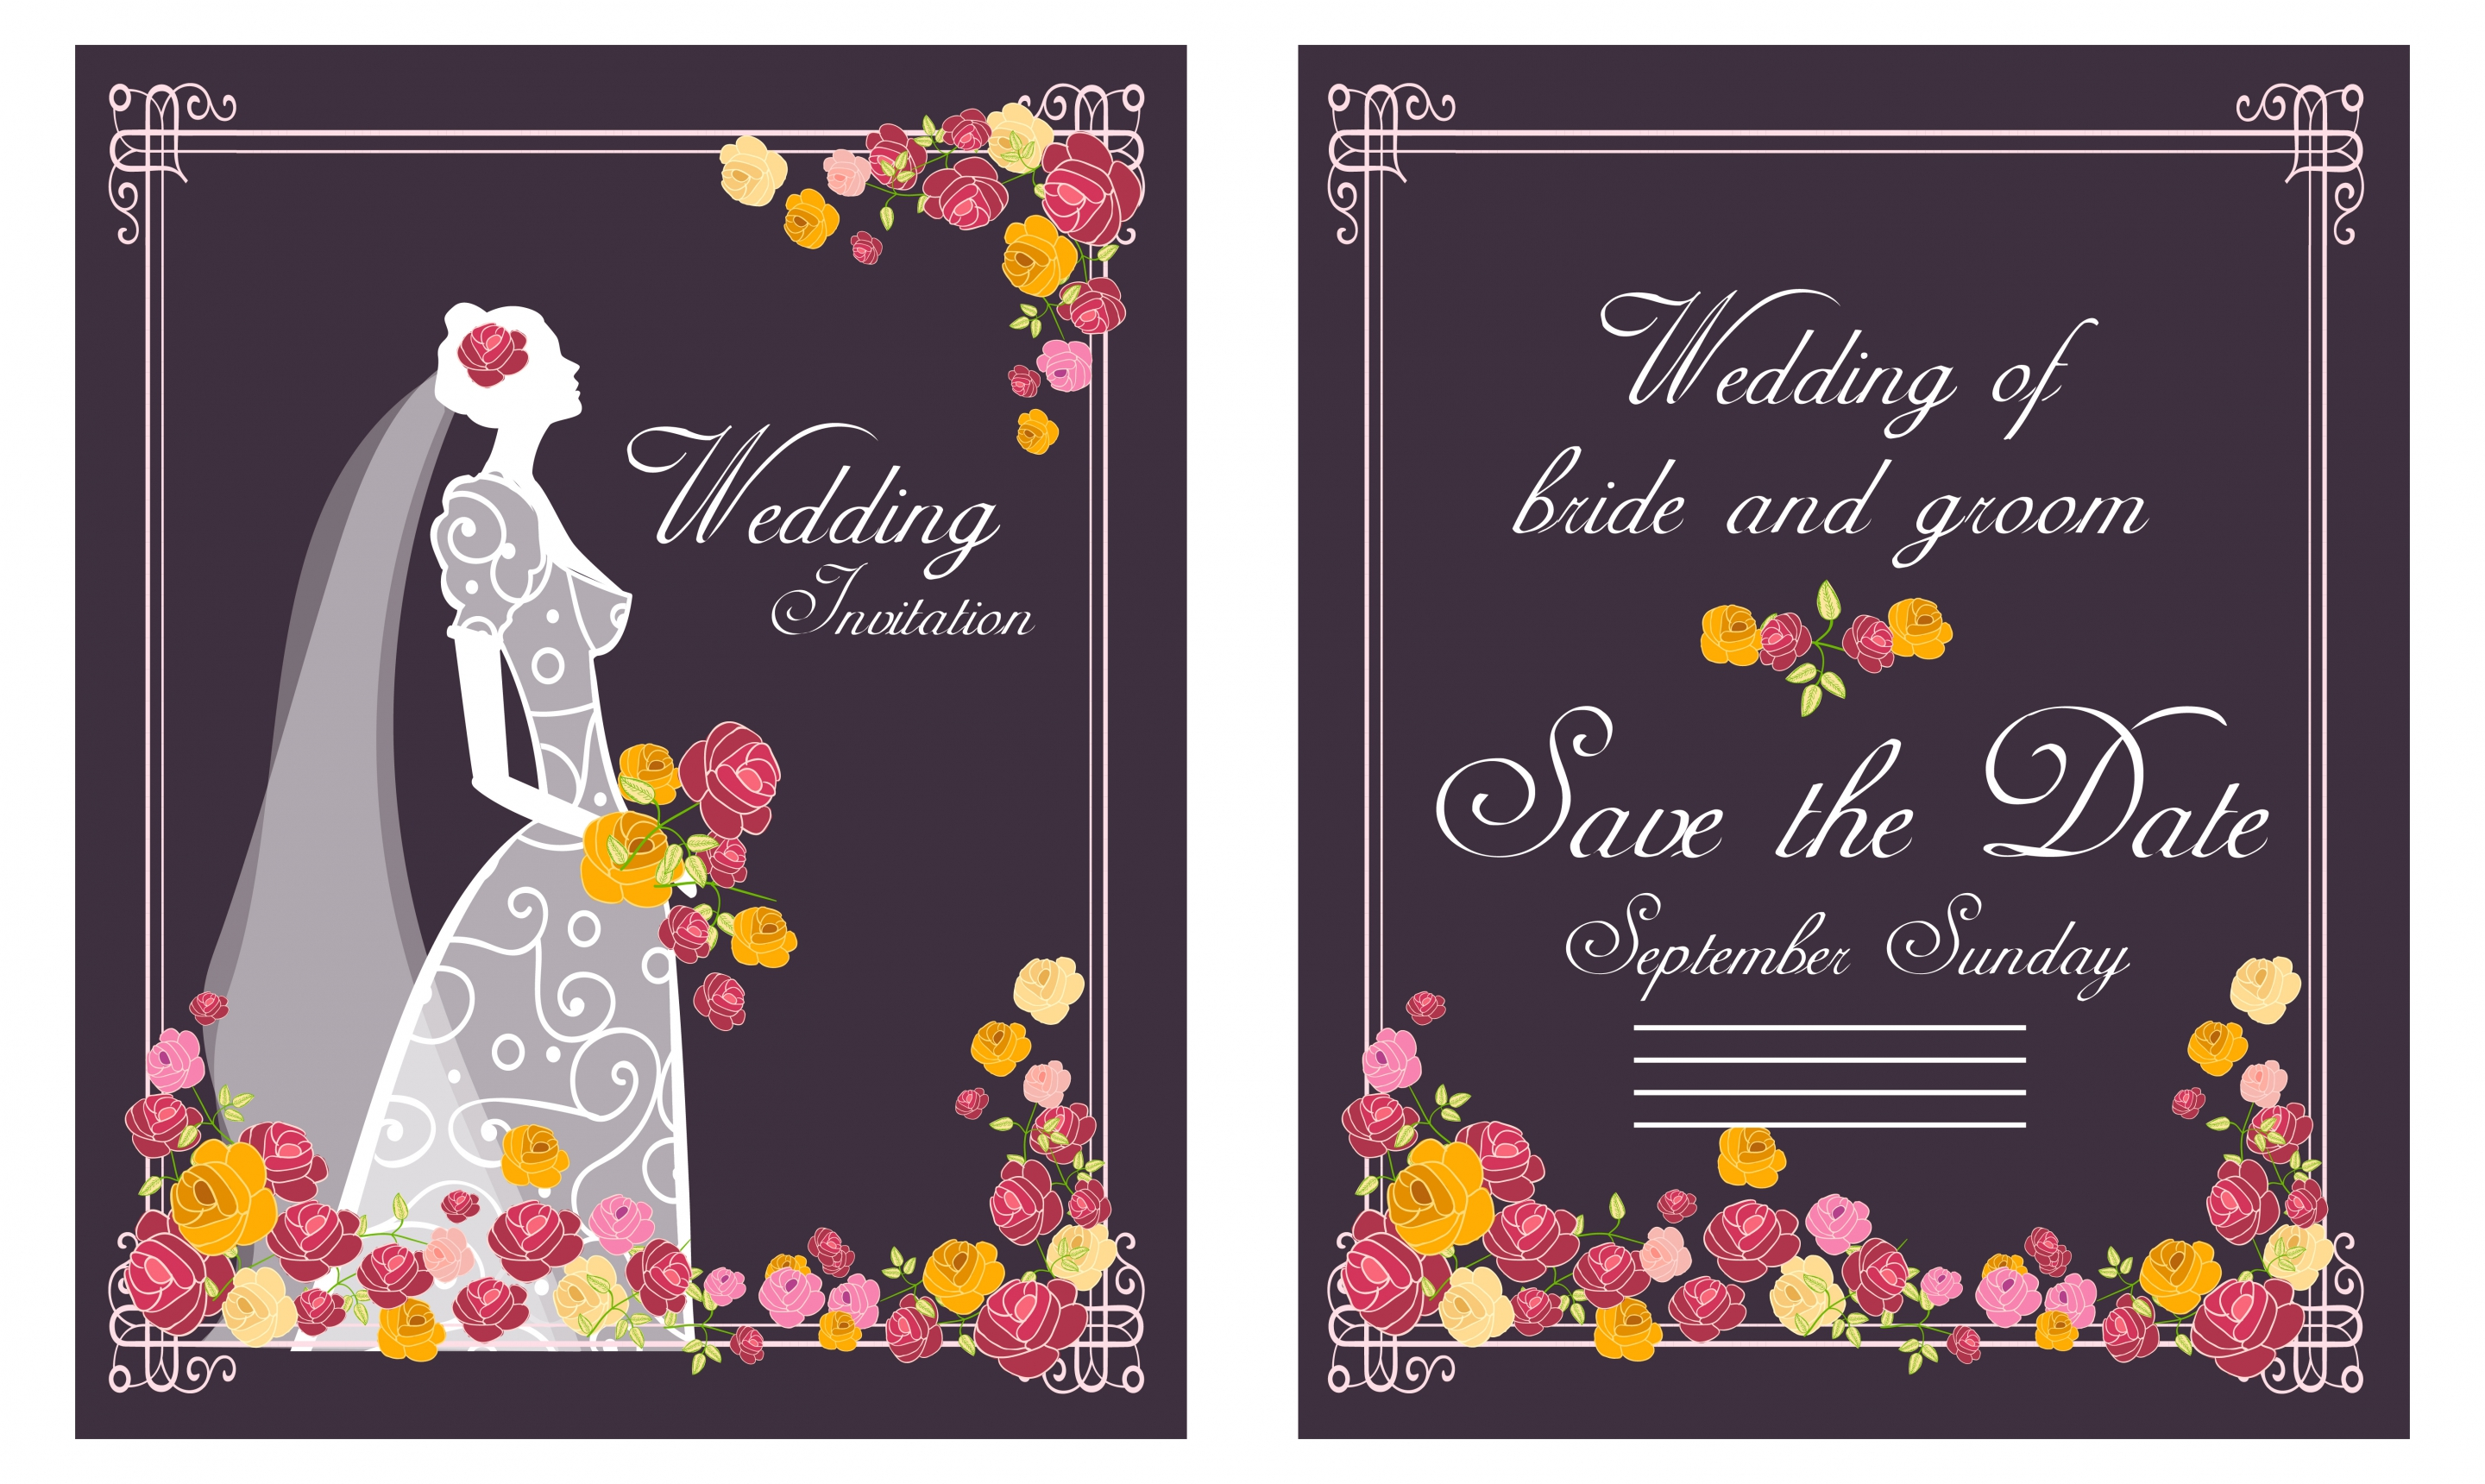 Wedding invitation 01